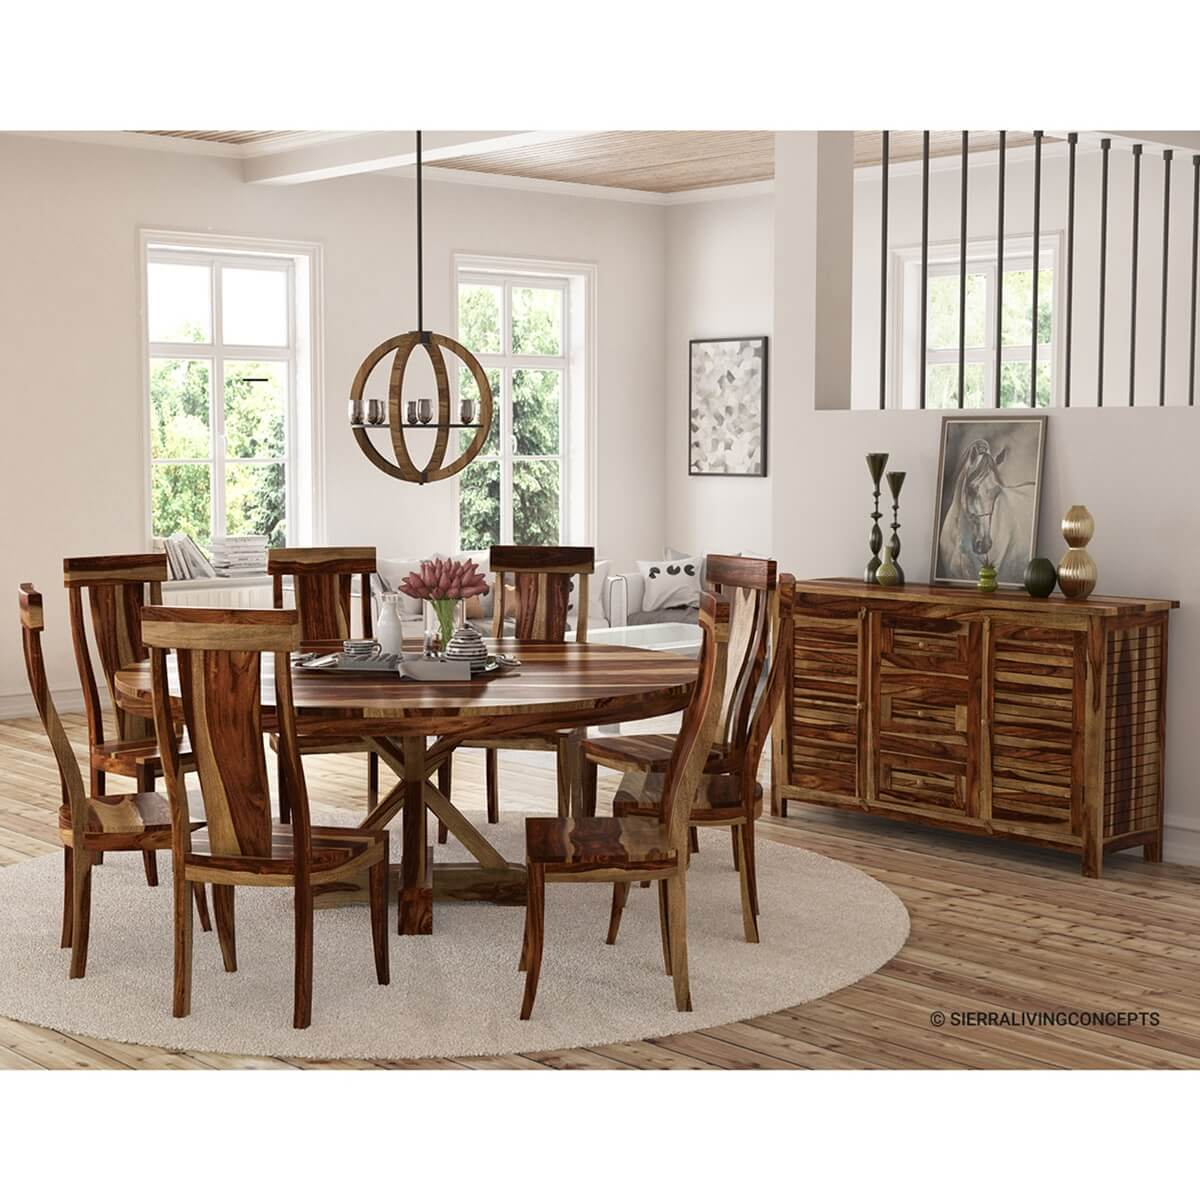 Bedford Rustic Solid Wood X Pedestal 10 Piece Round Dining Room Set